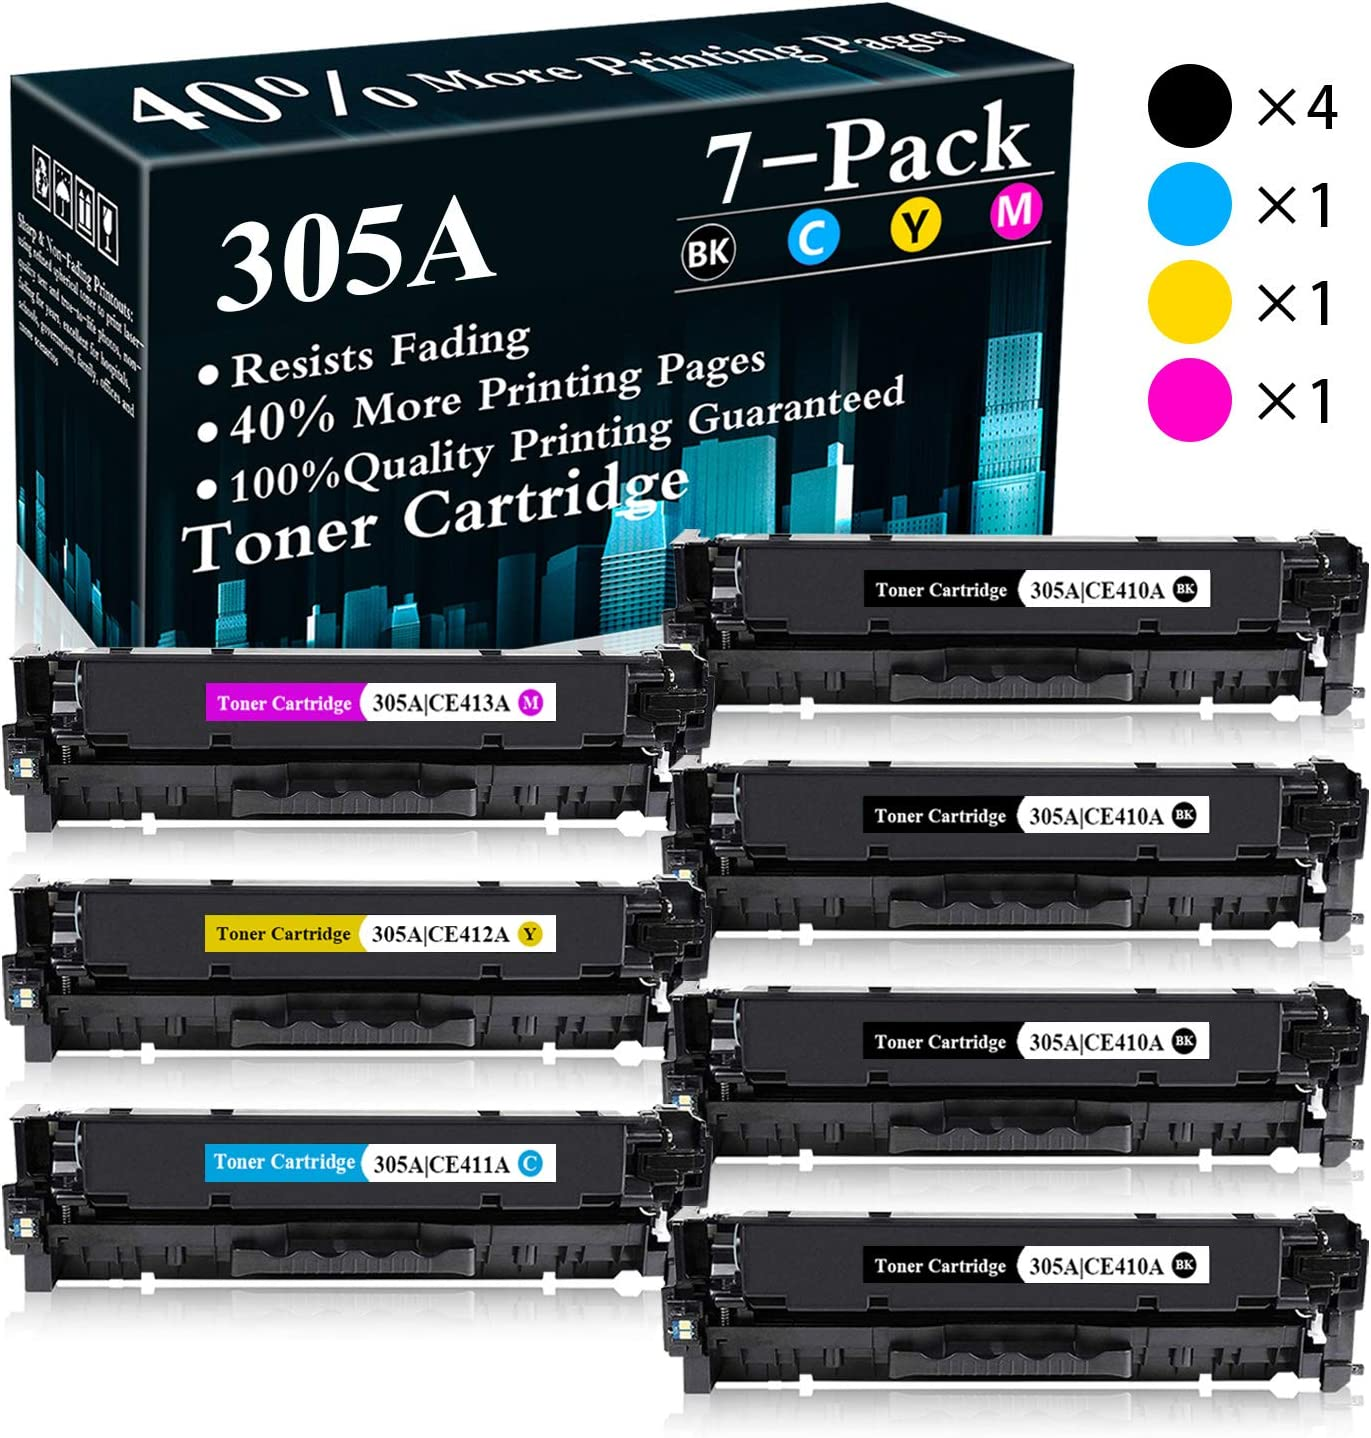 4BK+C+M+Y 7-Pack CE410A CE411A CE412A CE413A Remanufactured Toner Replacement for HP Color Laserjet Pro M351a M451nw M451dn M451dw MFP M475dn MFP M475dw MFP M375nw 305A